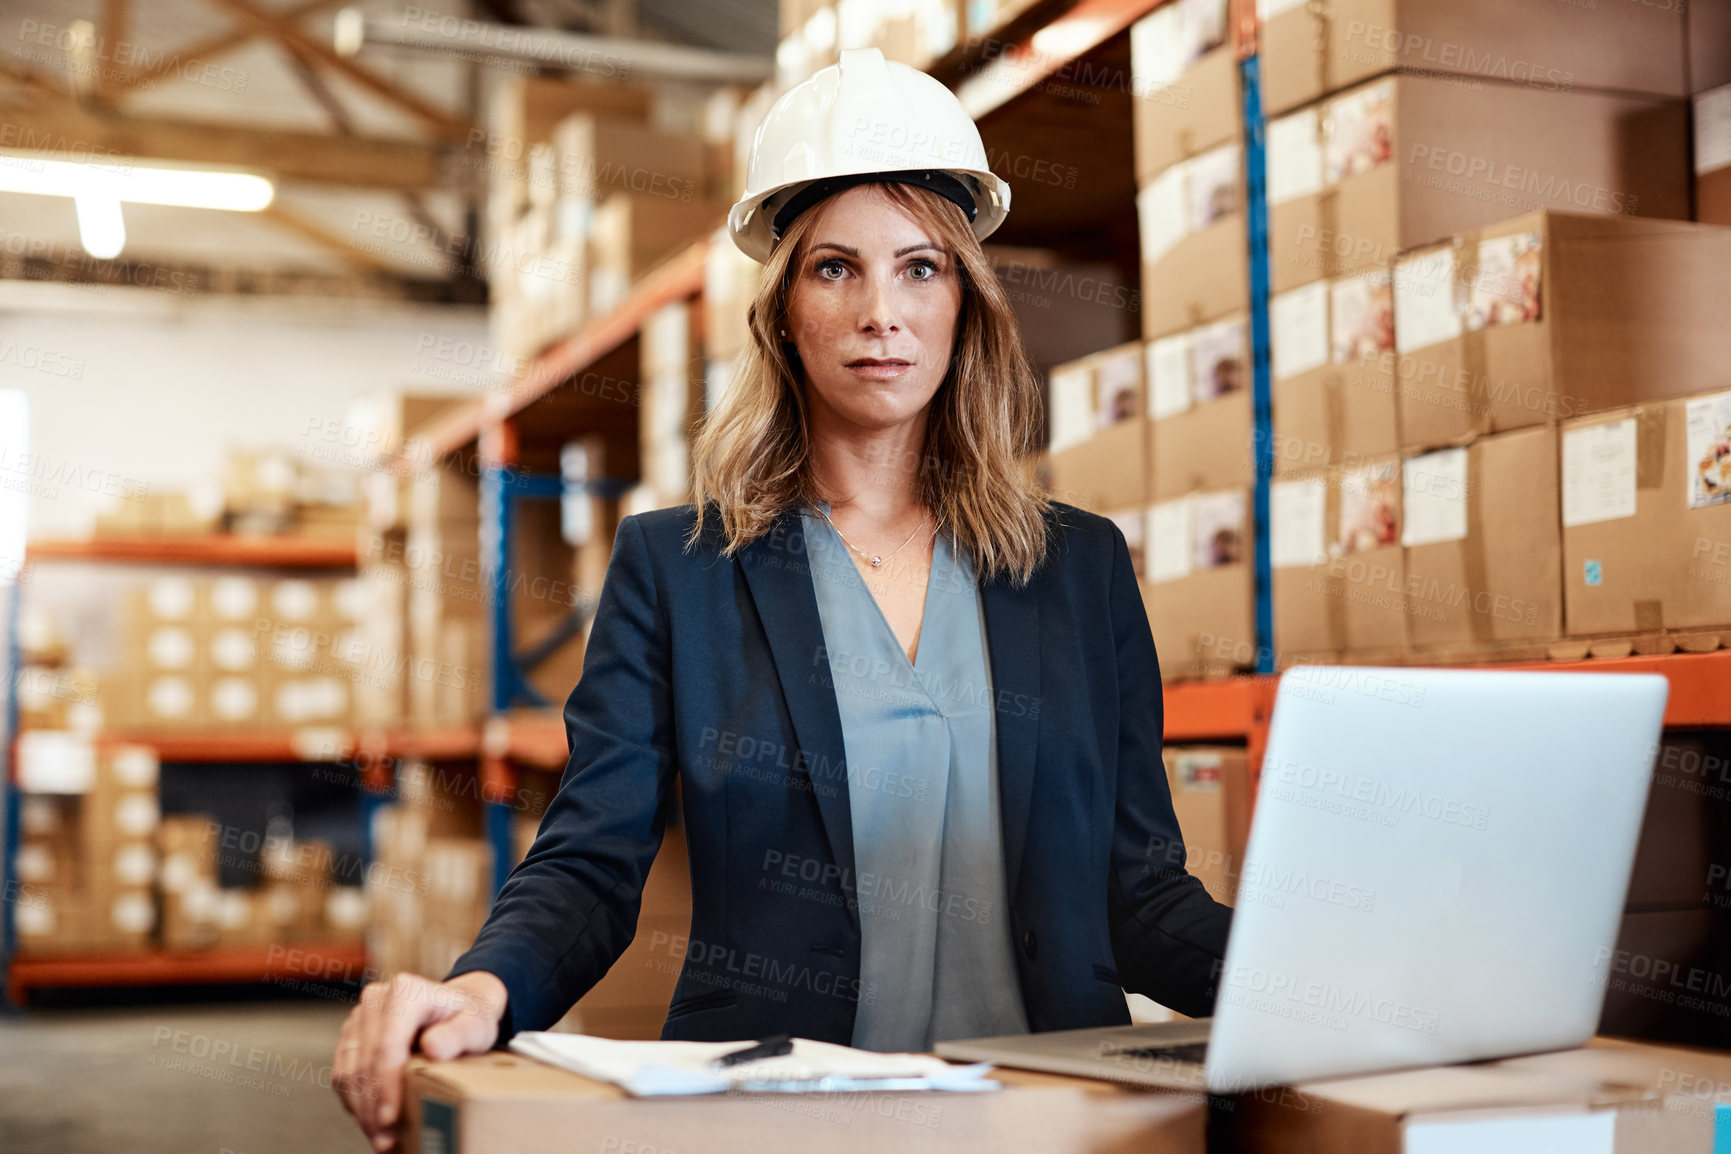 Buy stock photo Shot of a young woman using a laptop while working in a warehouse